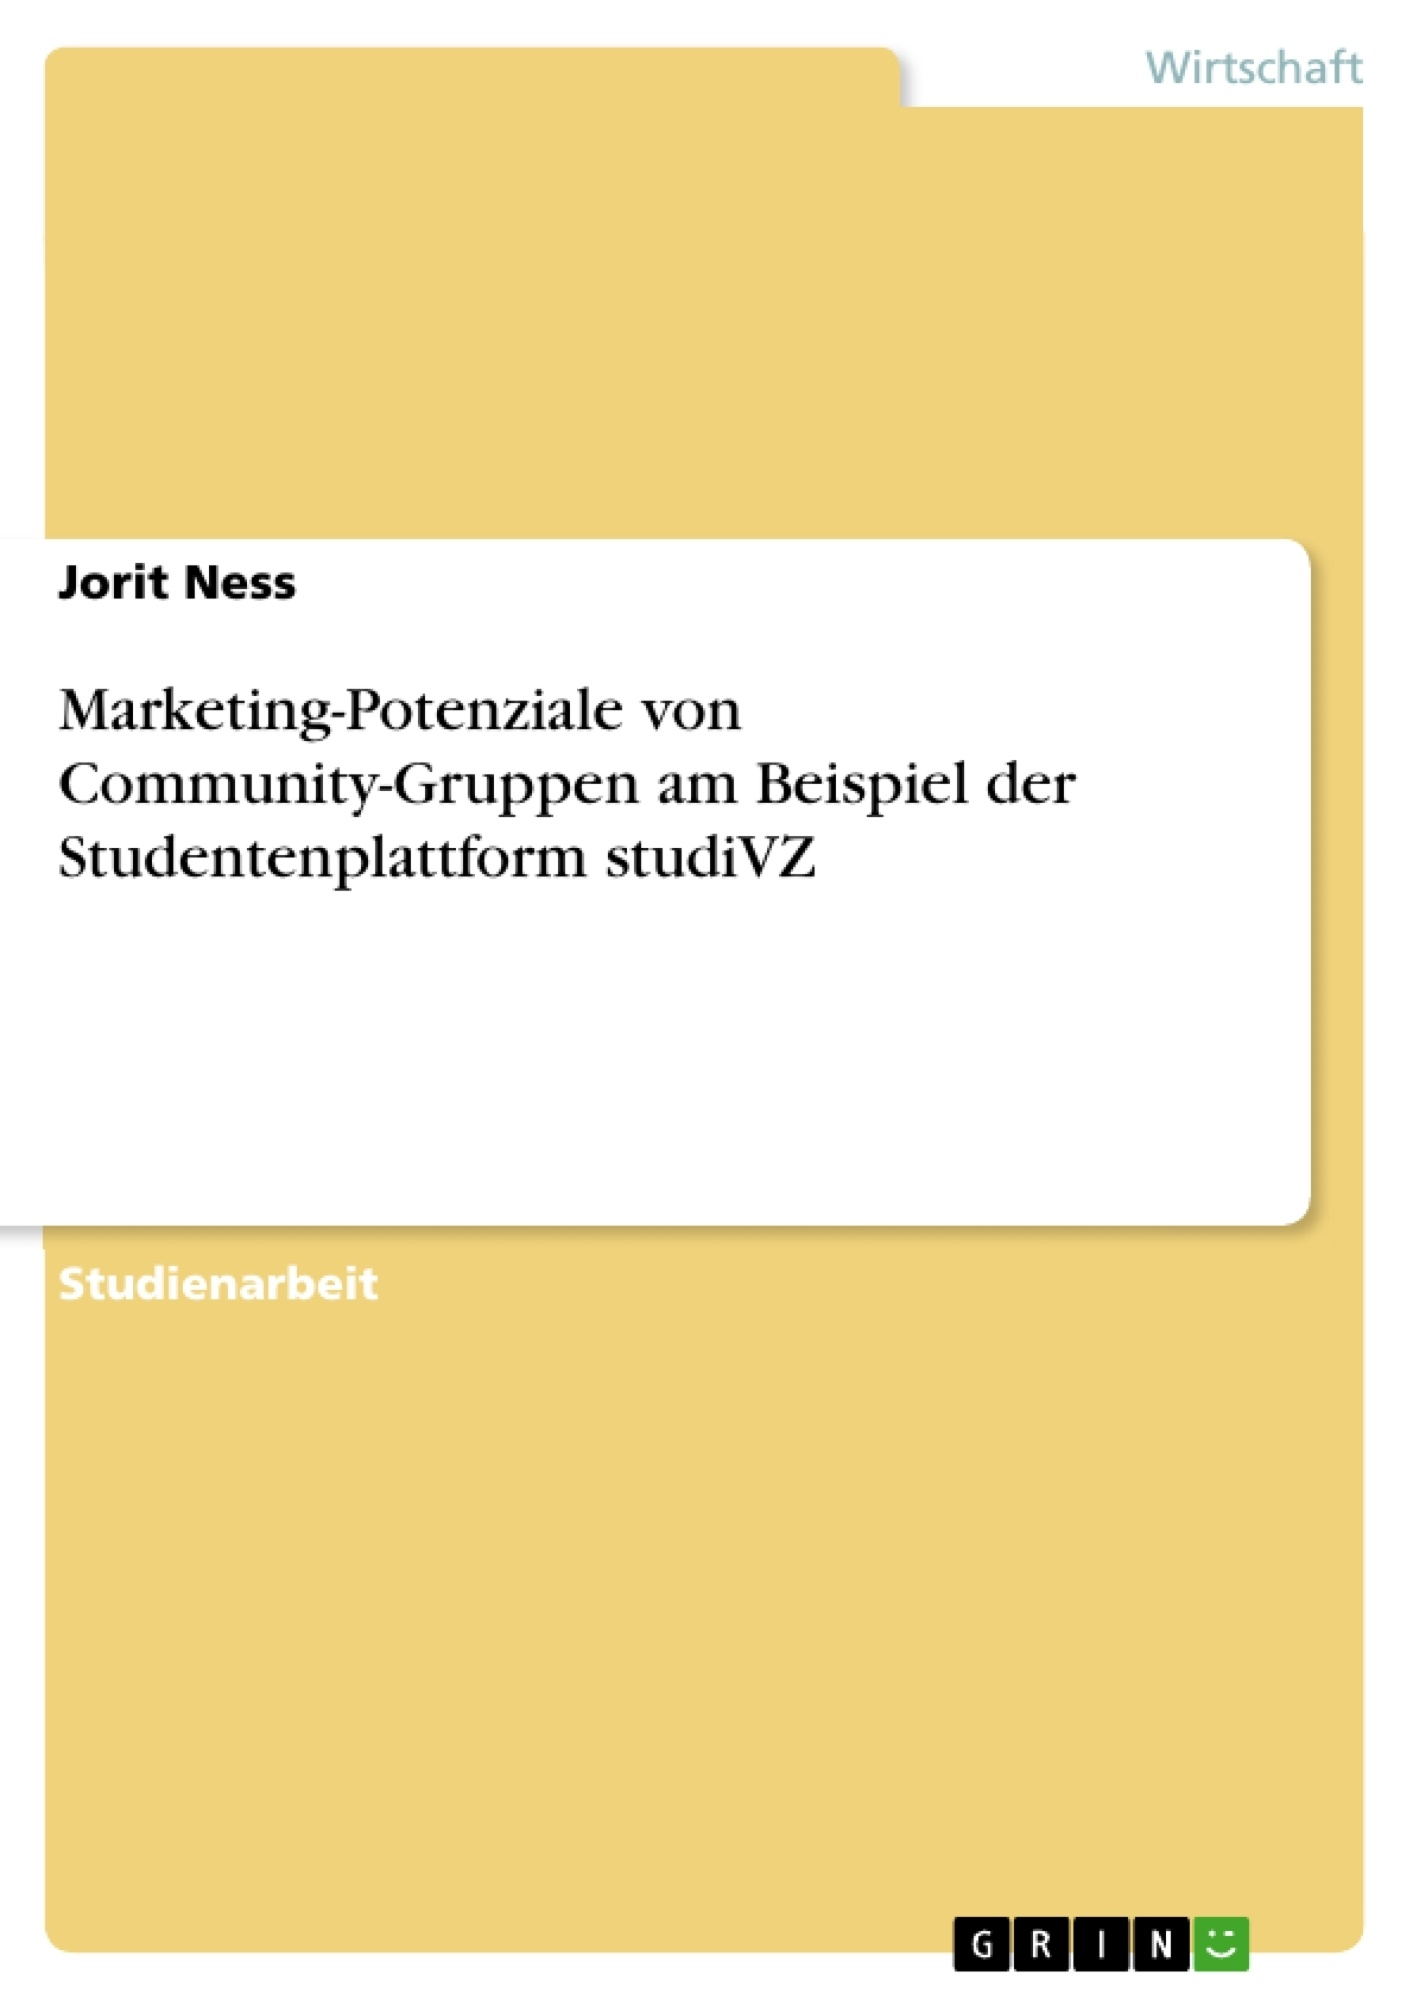 Titel: Marketing-Potenziale von Community-Gruppen am Beispiel der Studentenplattform studiVZ